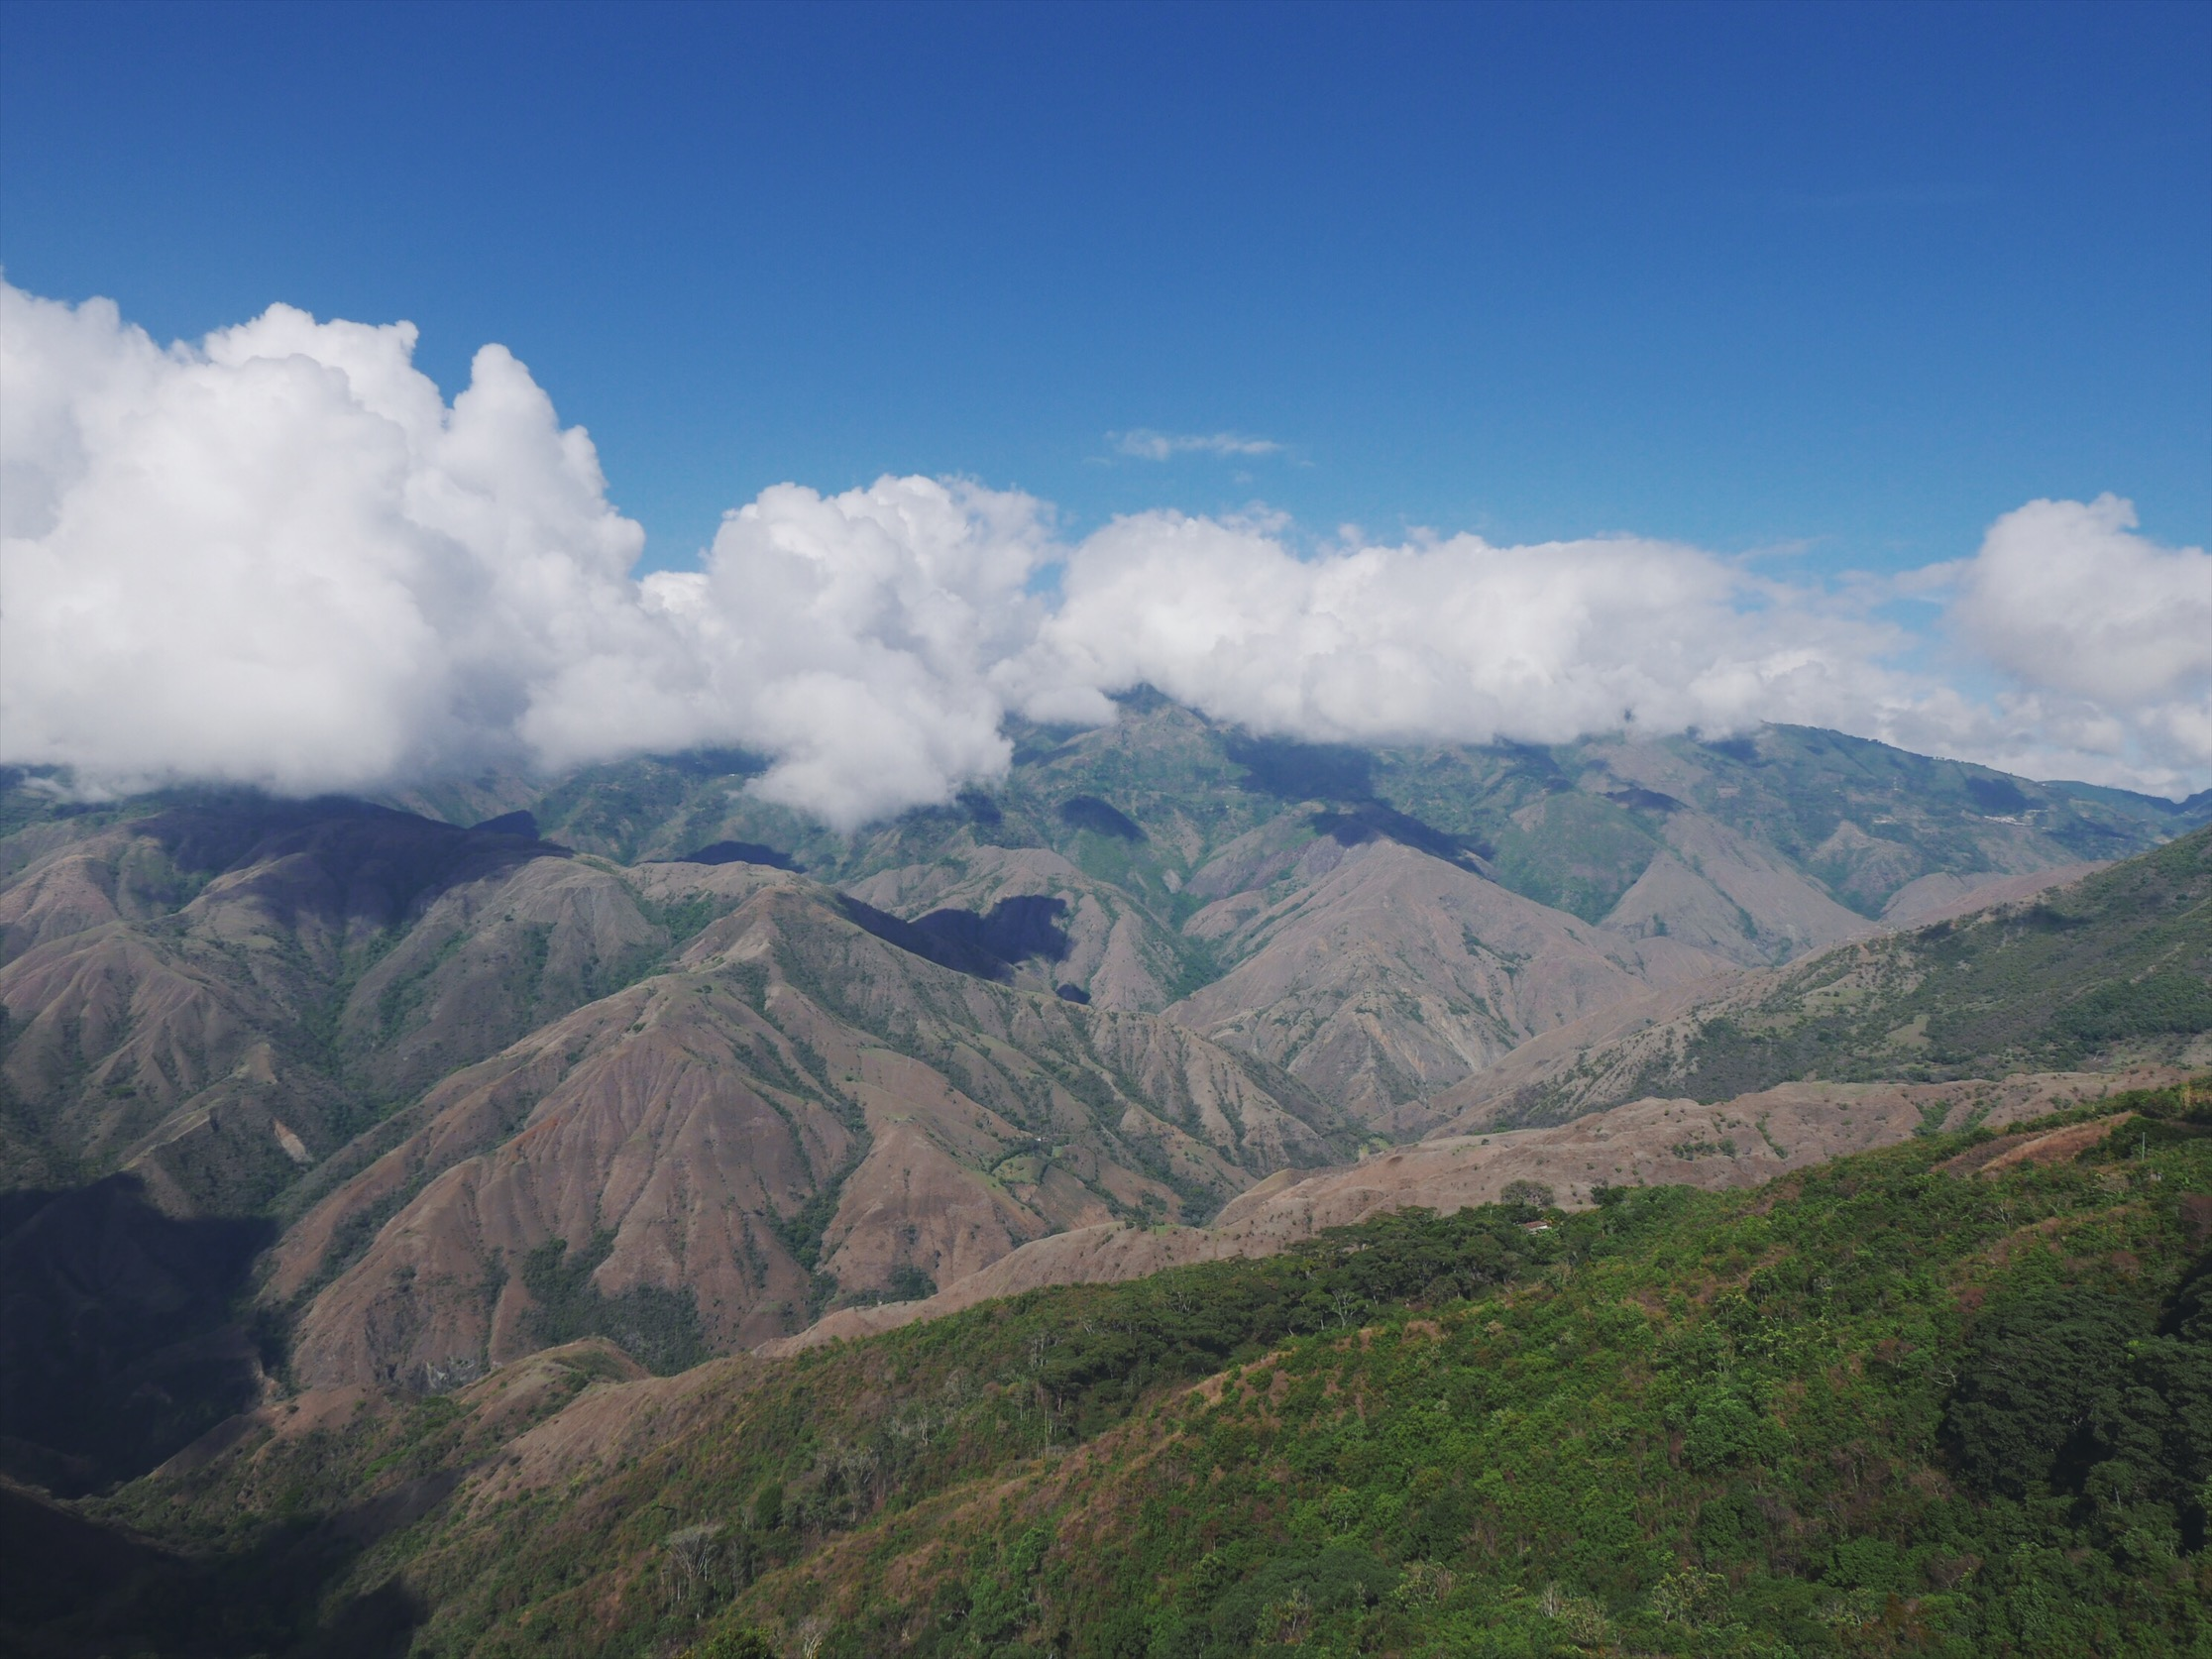 The Andes split into three separate mountain ranges in Colombia. The Cordillera Occidental, Central and Oriental. Our track has us eventually going up and over all three.